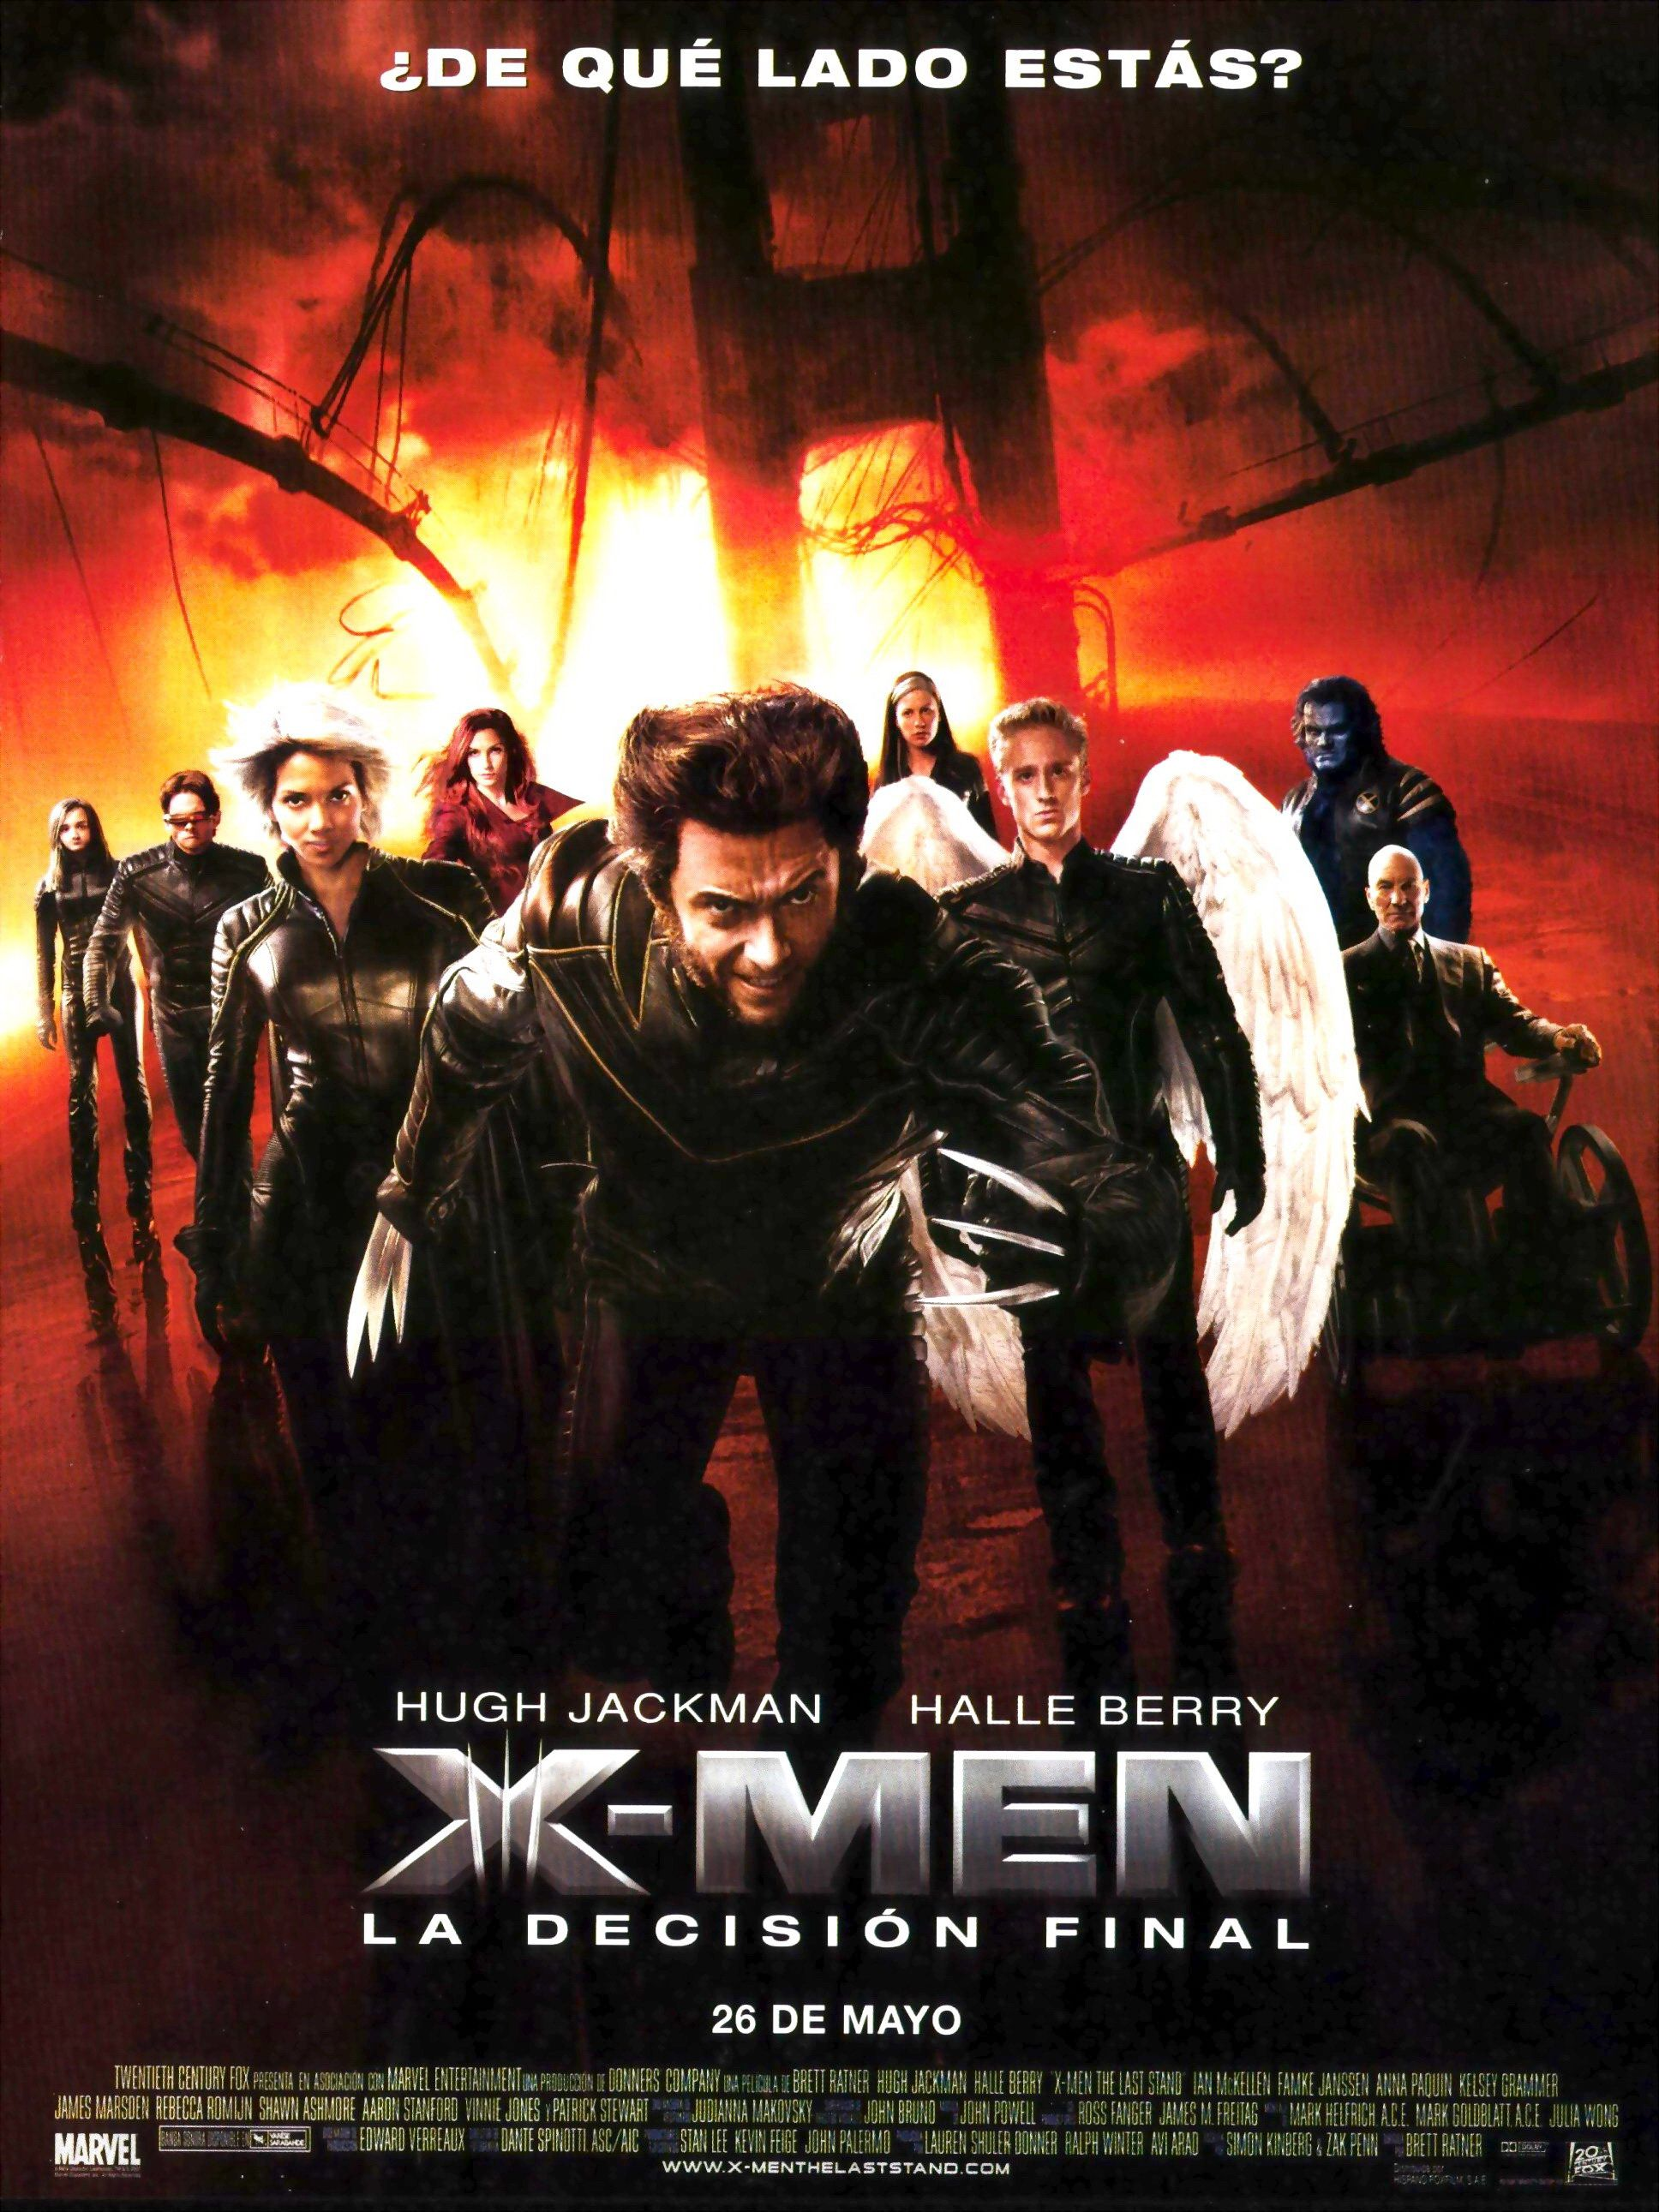 2006 - X-Men 3 La decisión final - X-Men The Last Stand - tt0376994